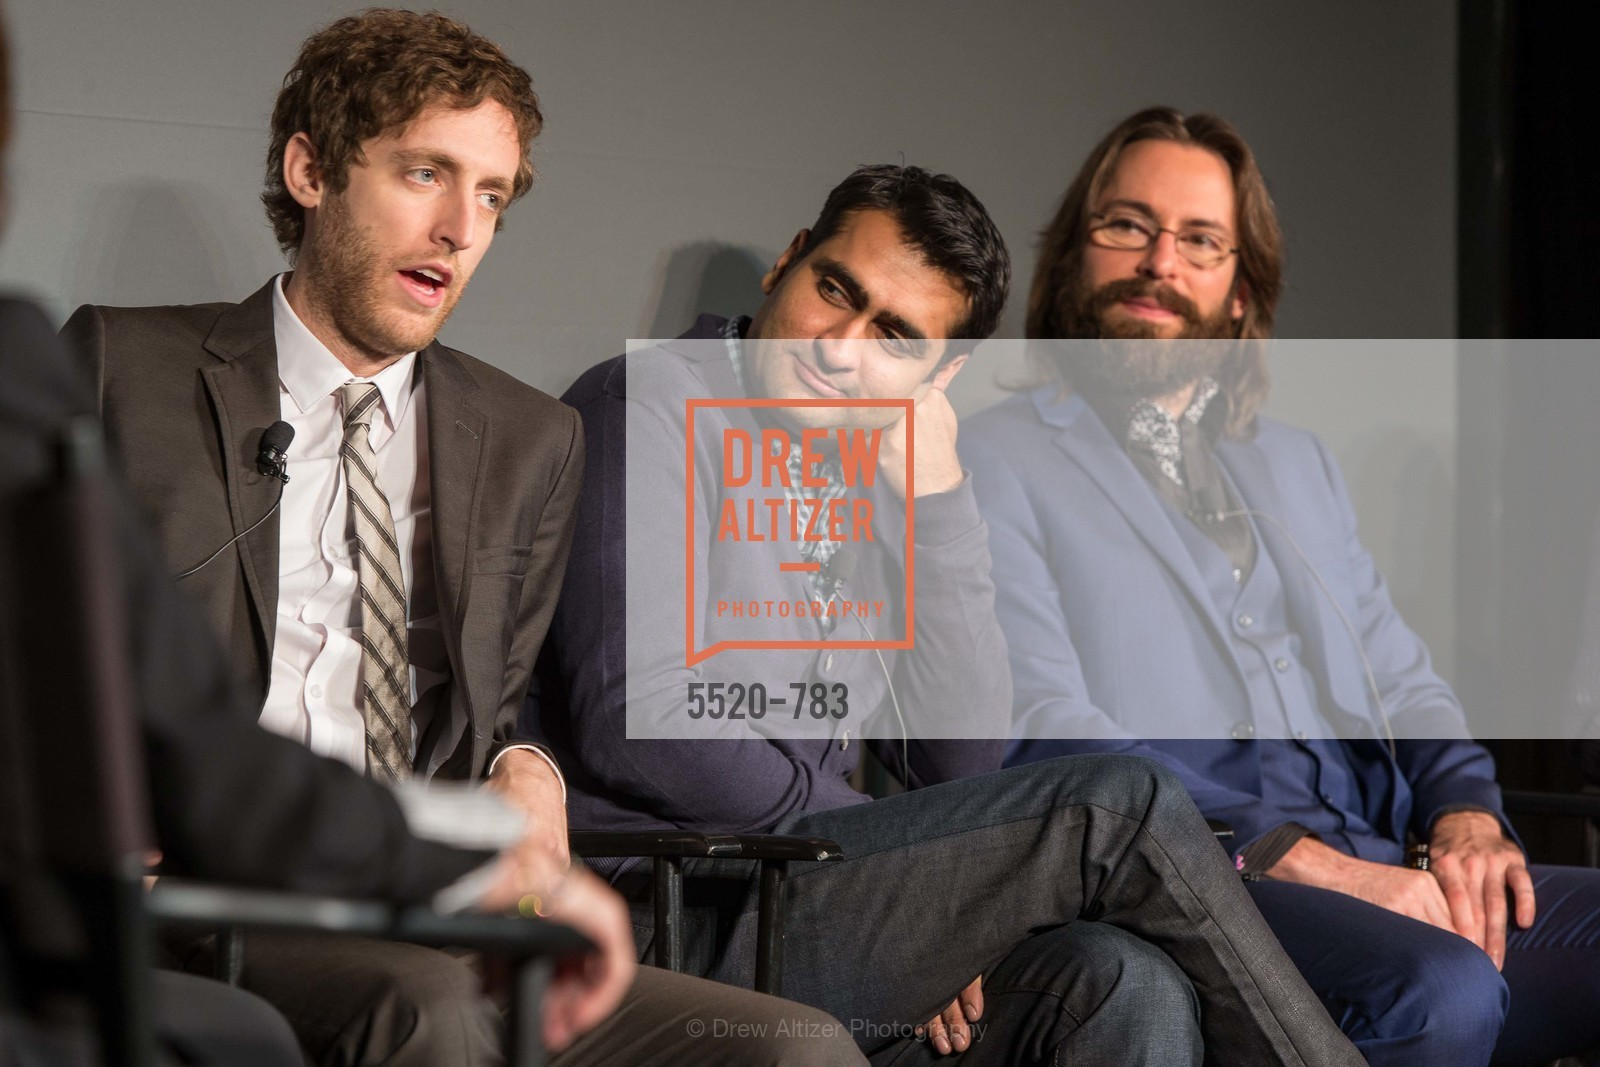 Thomas Middleditch, Kumail Nanjiani, Martin Starr, HBO'S SILICON VALLEY San Francisco Screening, US, April 8th, 2015,Drew Altizer, Drew Altizer Photography, full-service agency, private events, San Francisco photographer, photographer california